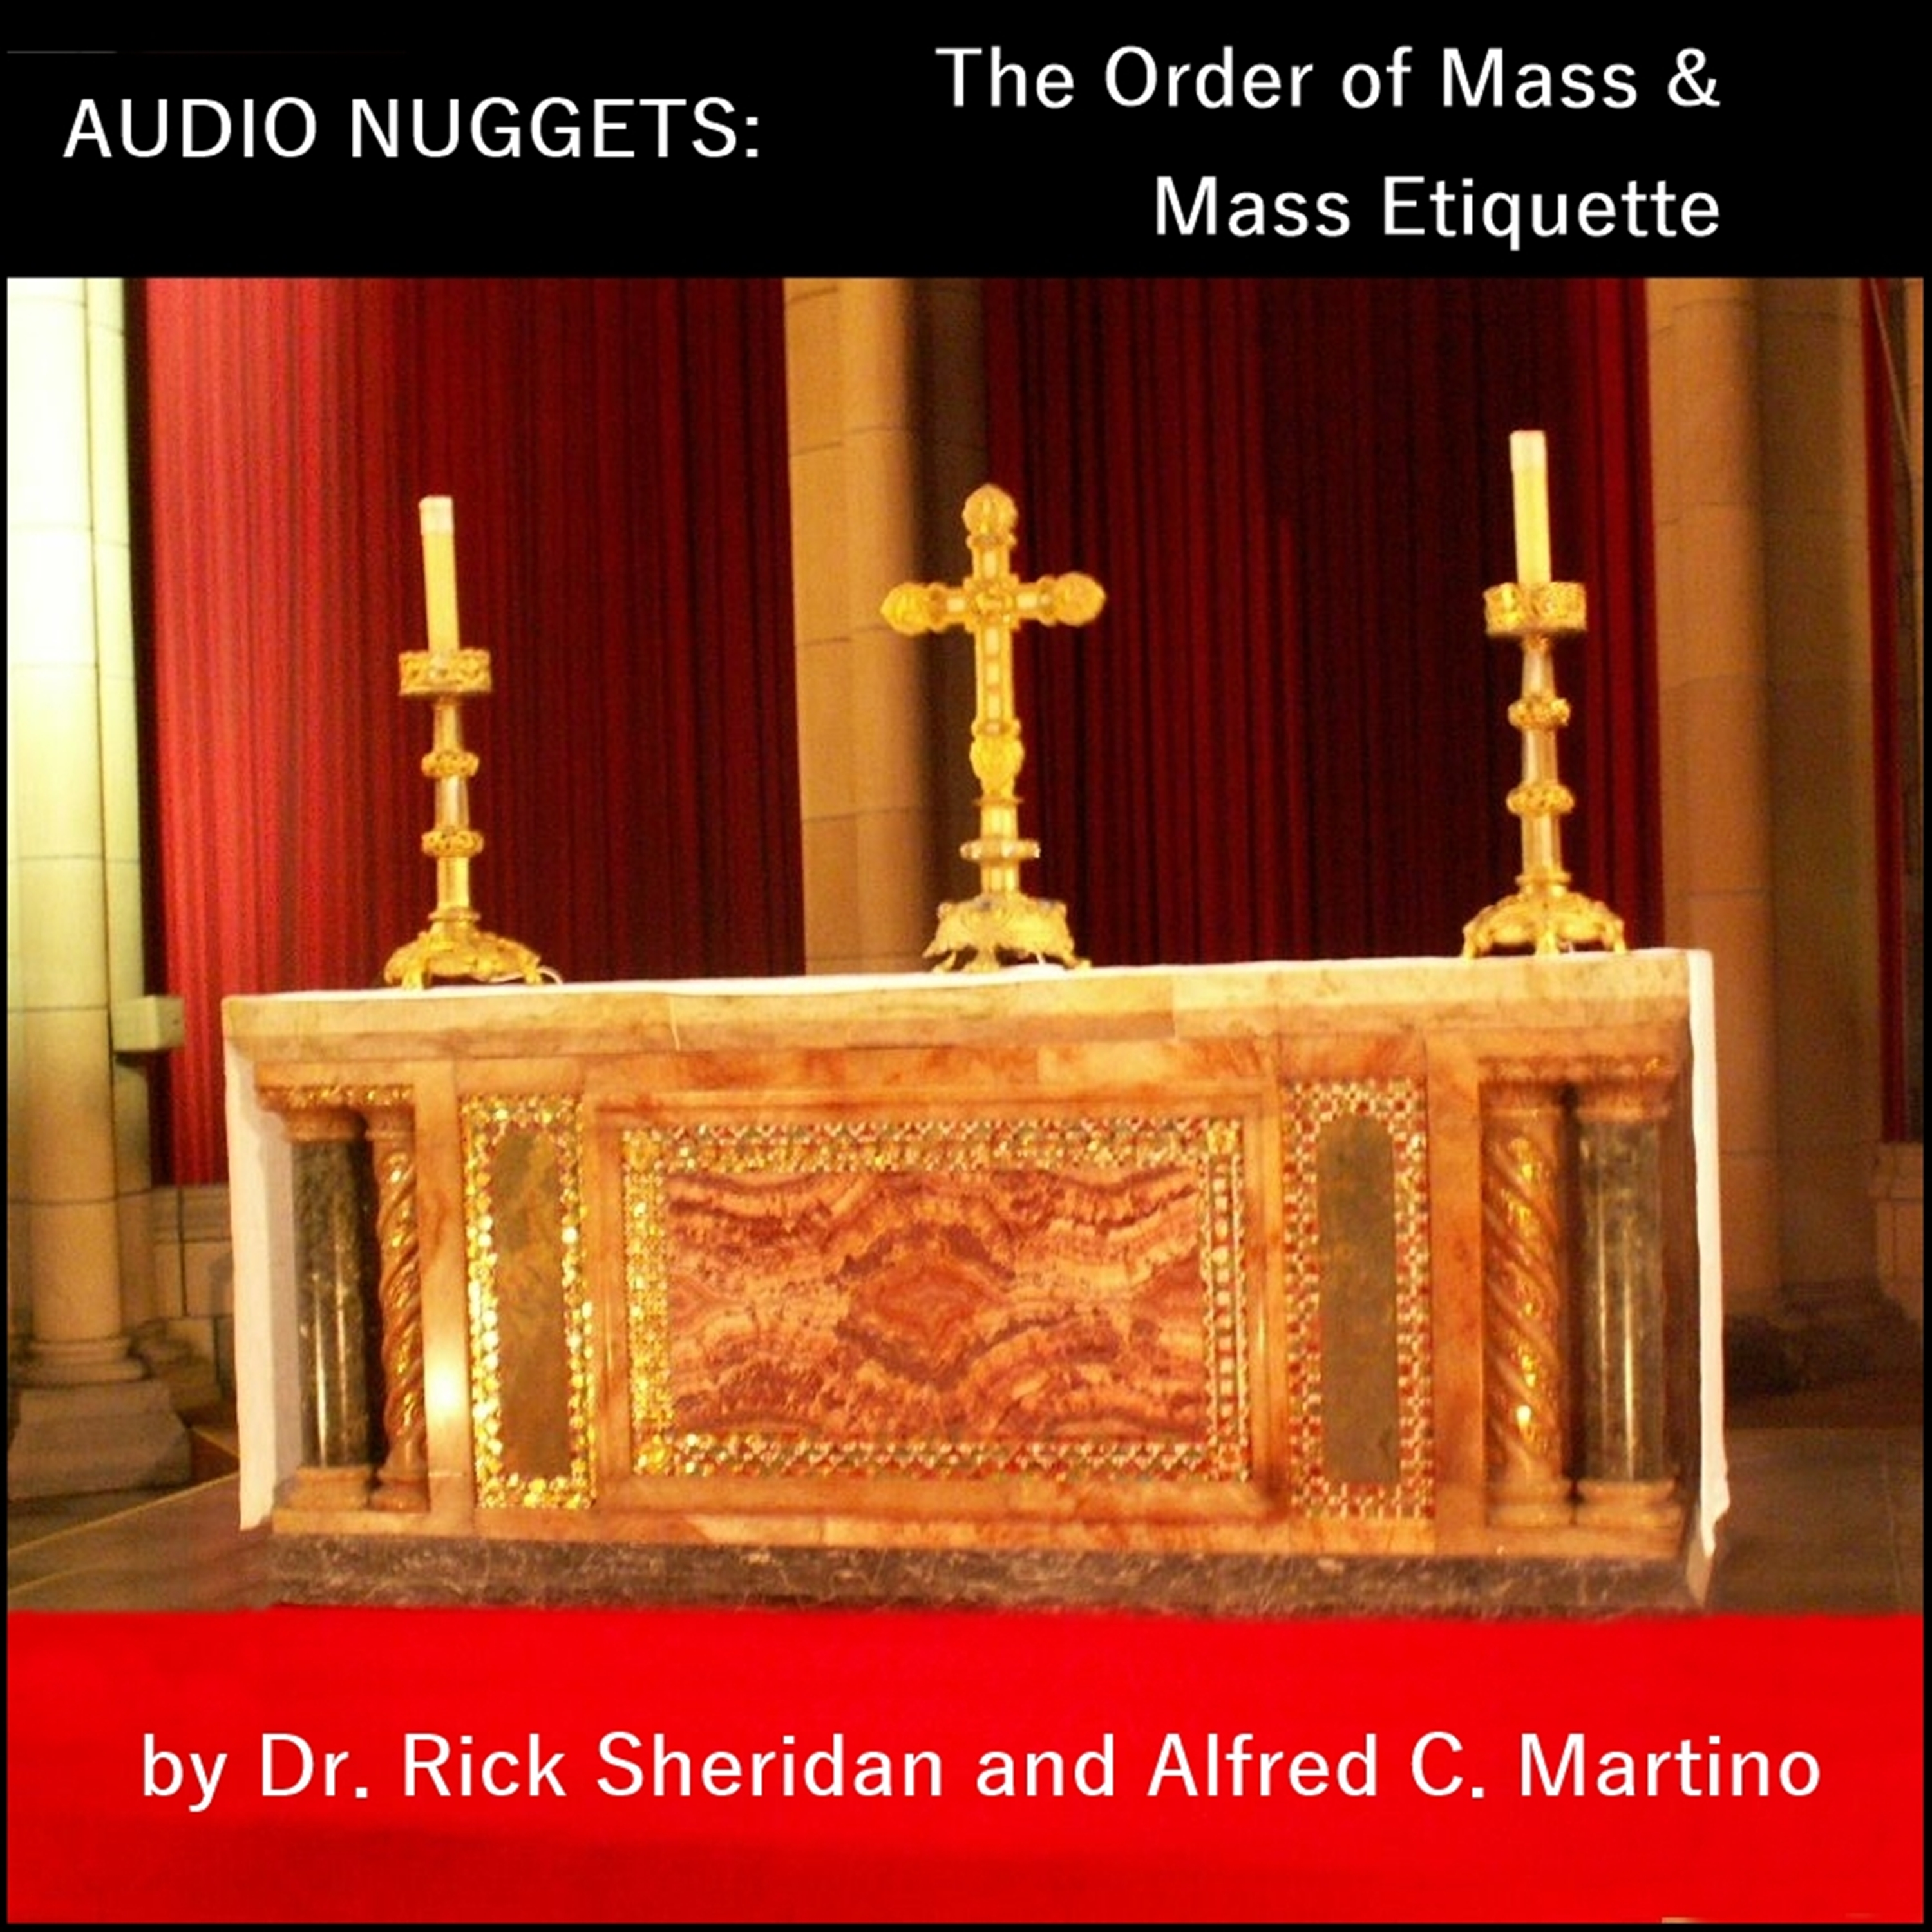 Audio Nuggets: The Order of Mass & Mass Etiquette [DD]